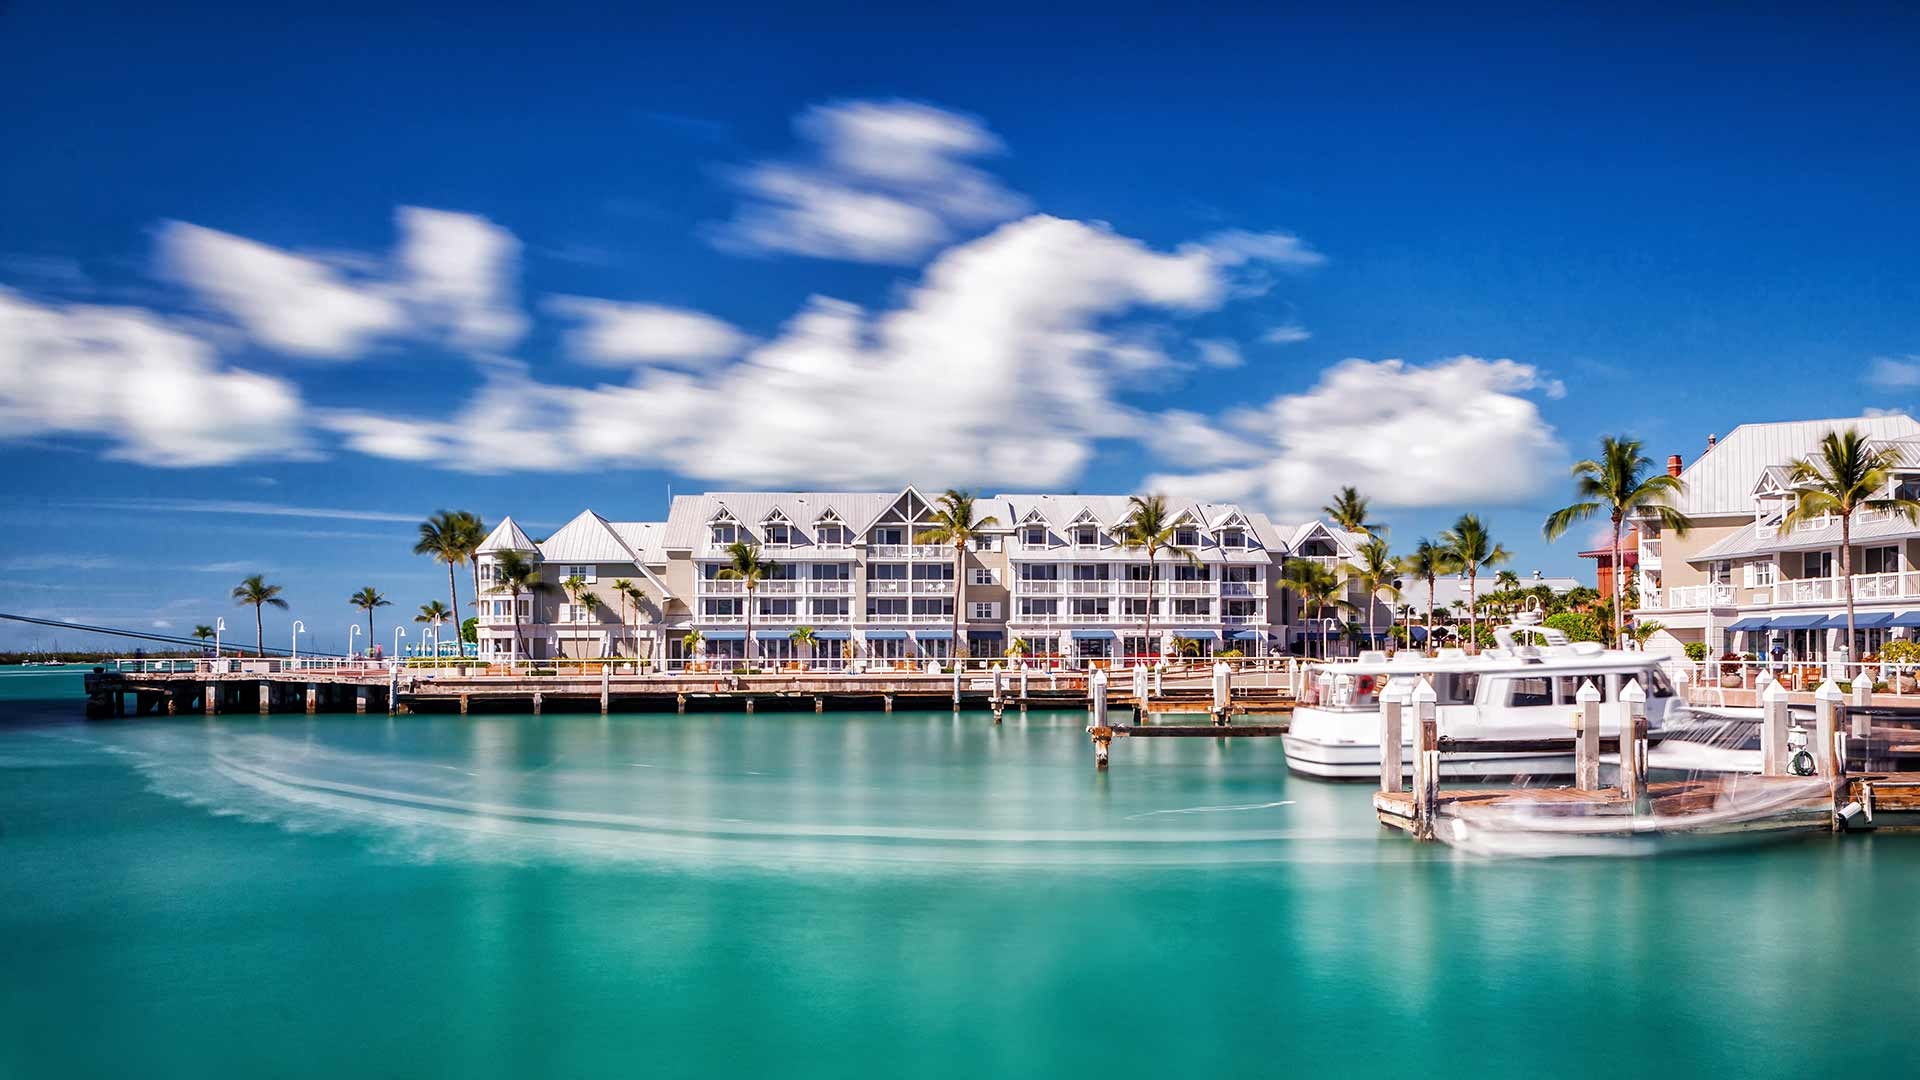 Beautiful picture of the resort as seen from the water or boart